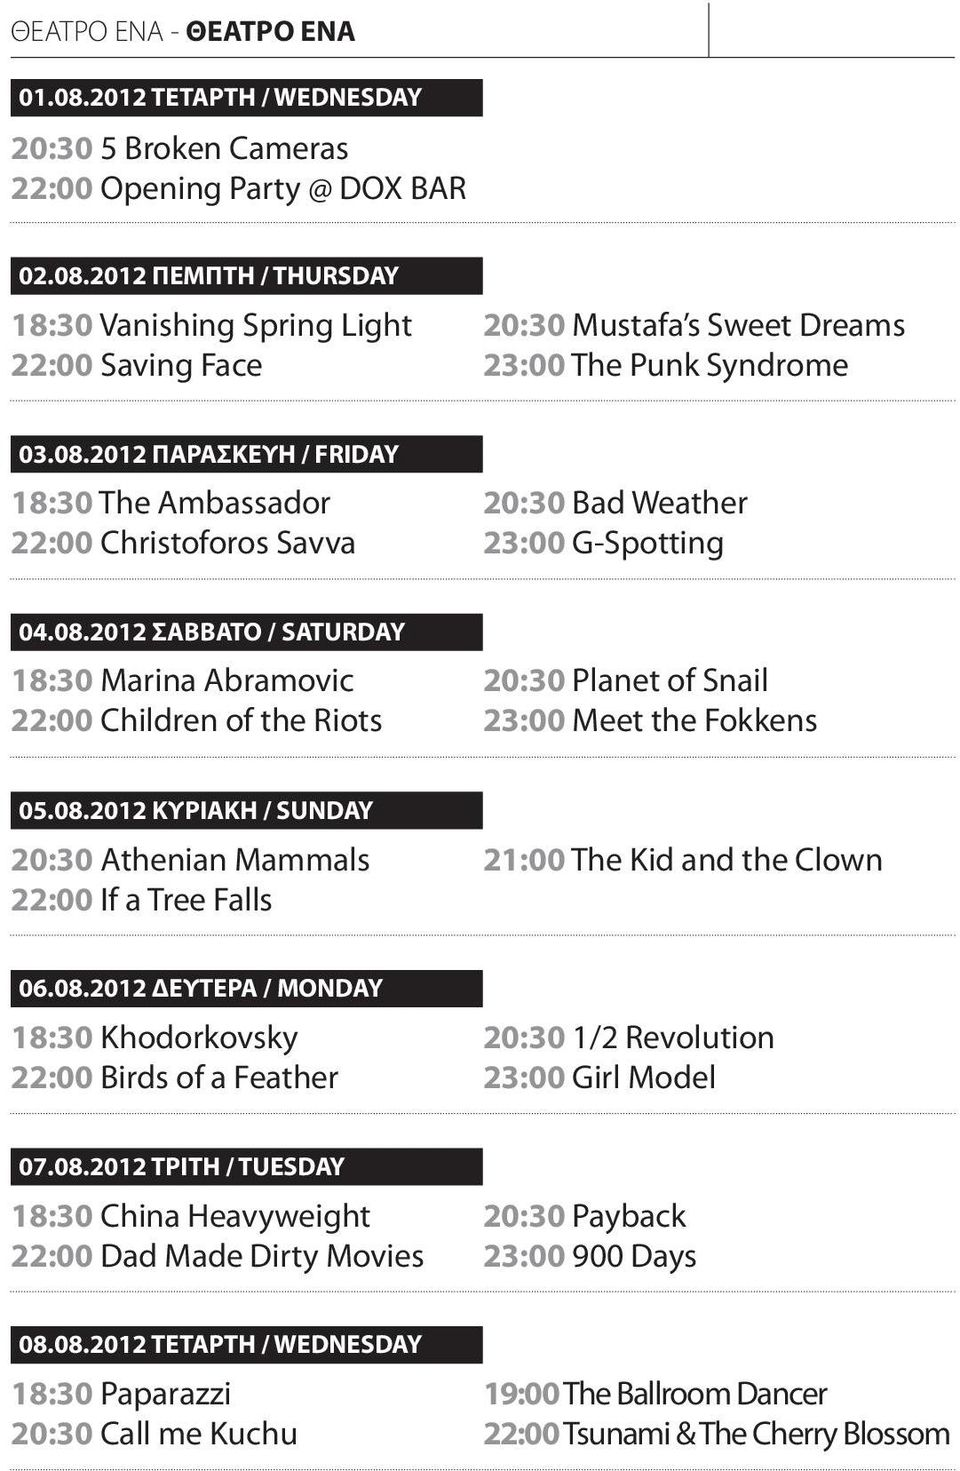 08.2012 ΚΥΡΙΑΚΗ / SUNDAY 20:30 Athenian Mammals 22:00 If a Tree Falls 21:00 The Kid and the Clown 06.08.2012 ΔΕΥΤΕΡΑ / MONDAY 18:30 Khodorkovsky 22:00 Birds of a Feather 20:30 1/2 Revolution 23:00 Girl Model 07.